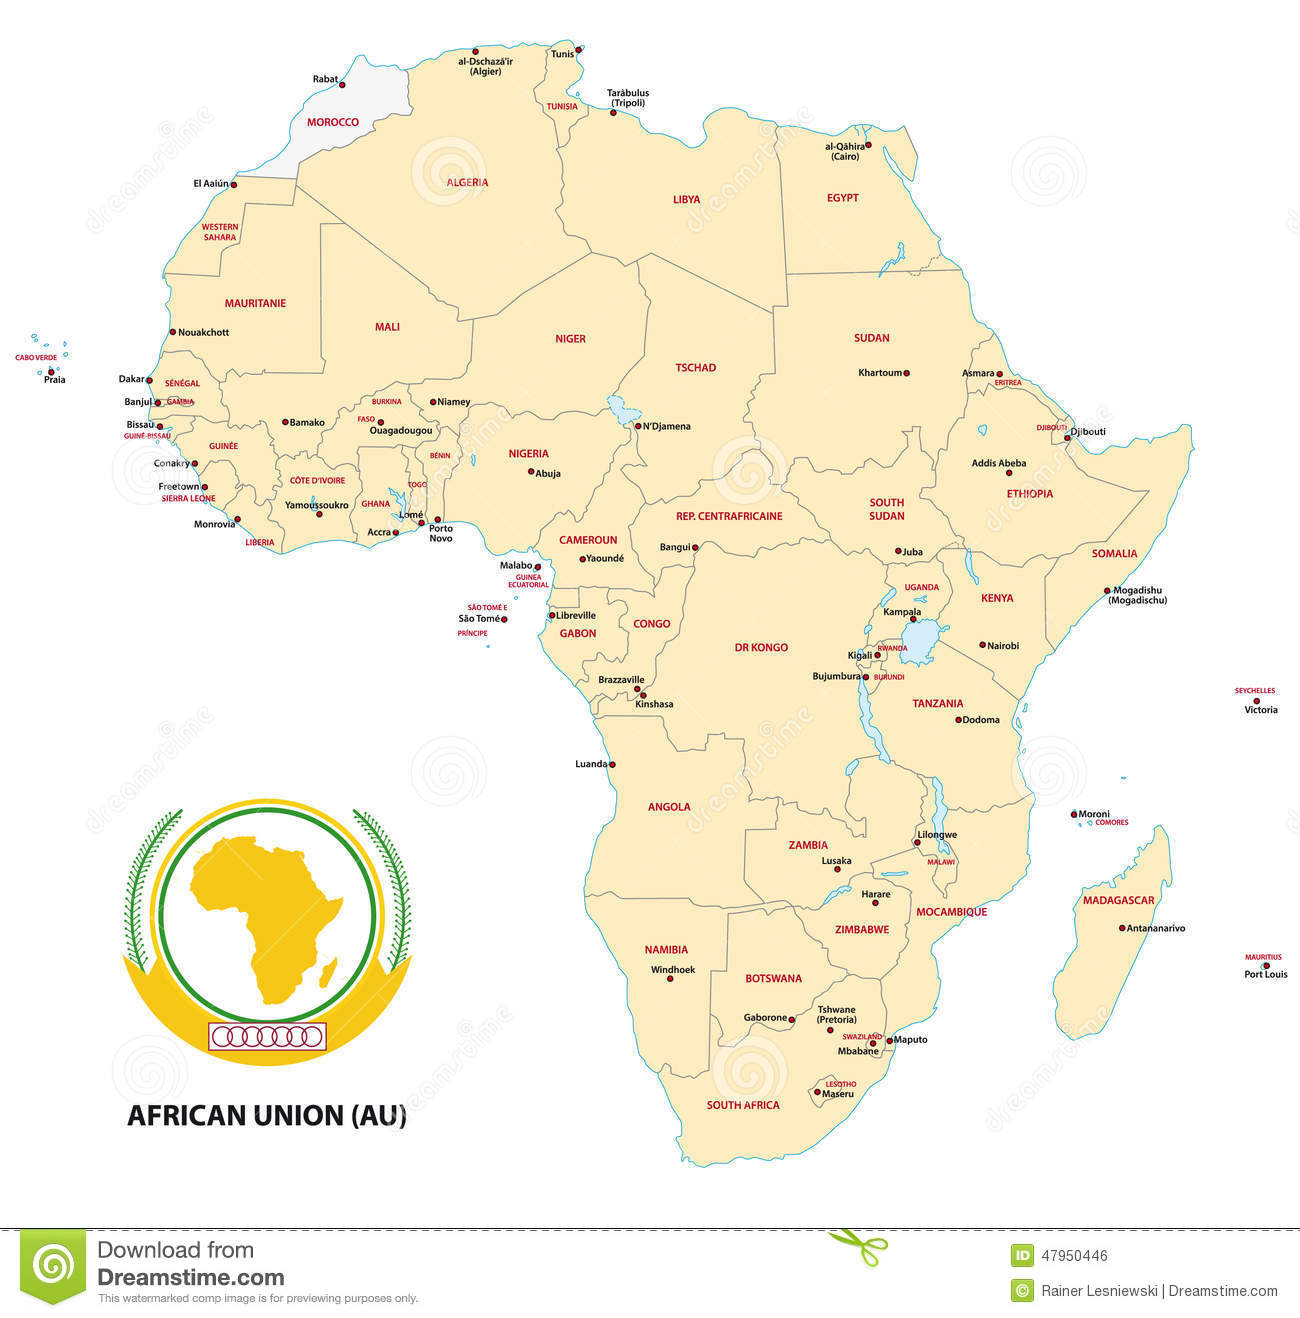 Africa (African Union) map stock vector. Illustration of mauritius